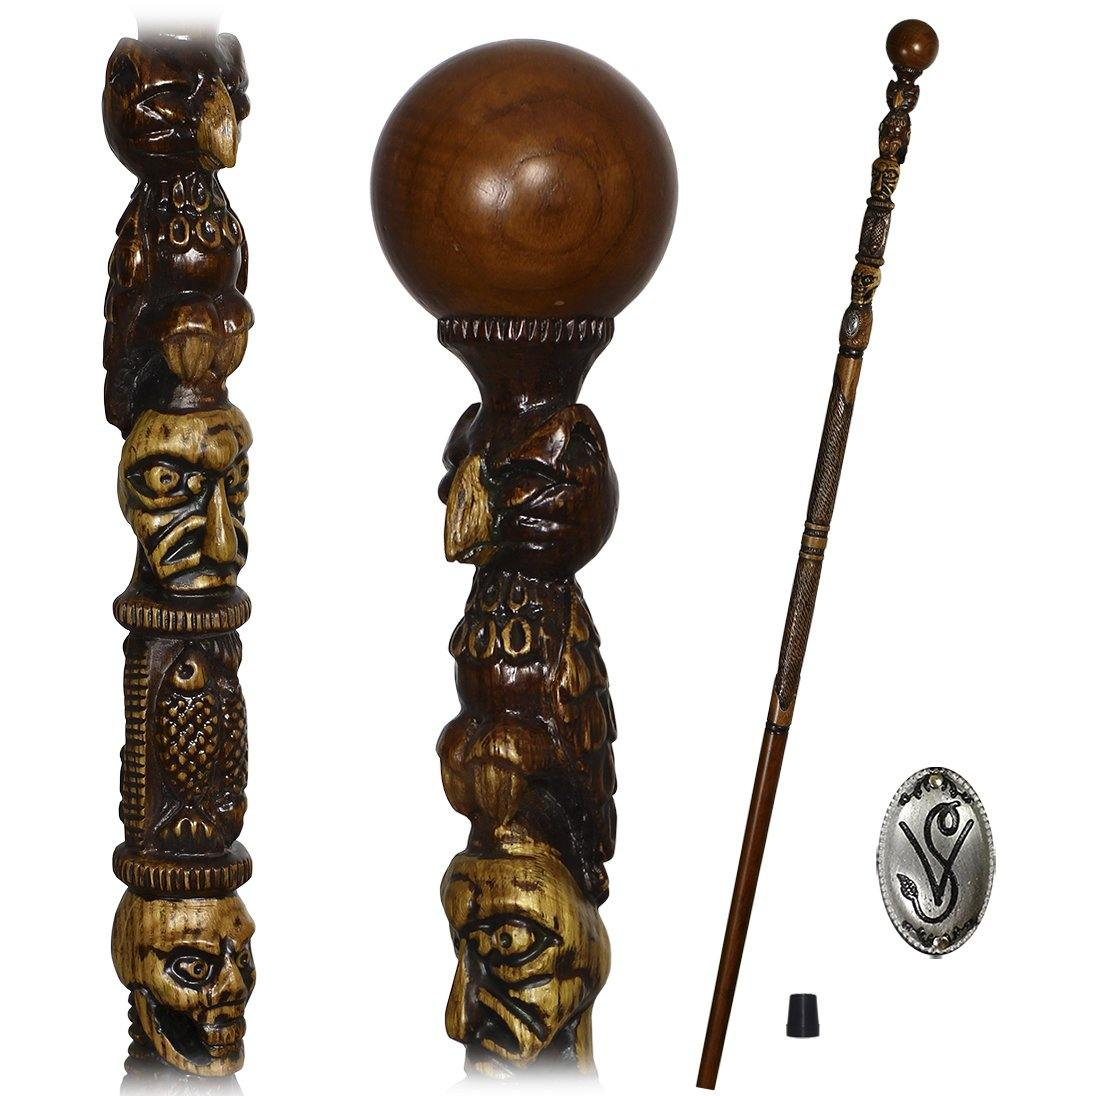 OWL & Skull Walking Cane Hiking Stick Staff Trekking Pole - GC-Artis Walking Sticks Canes